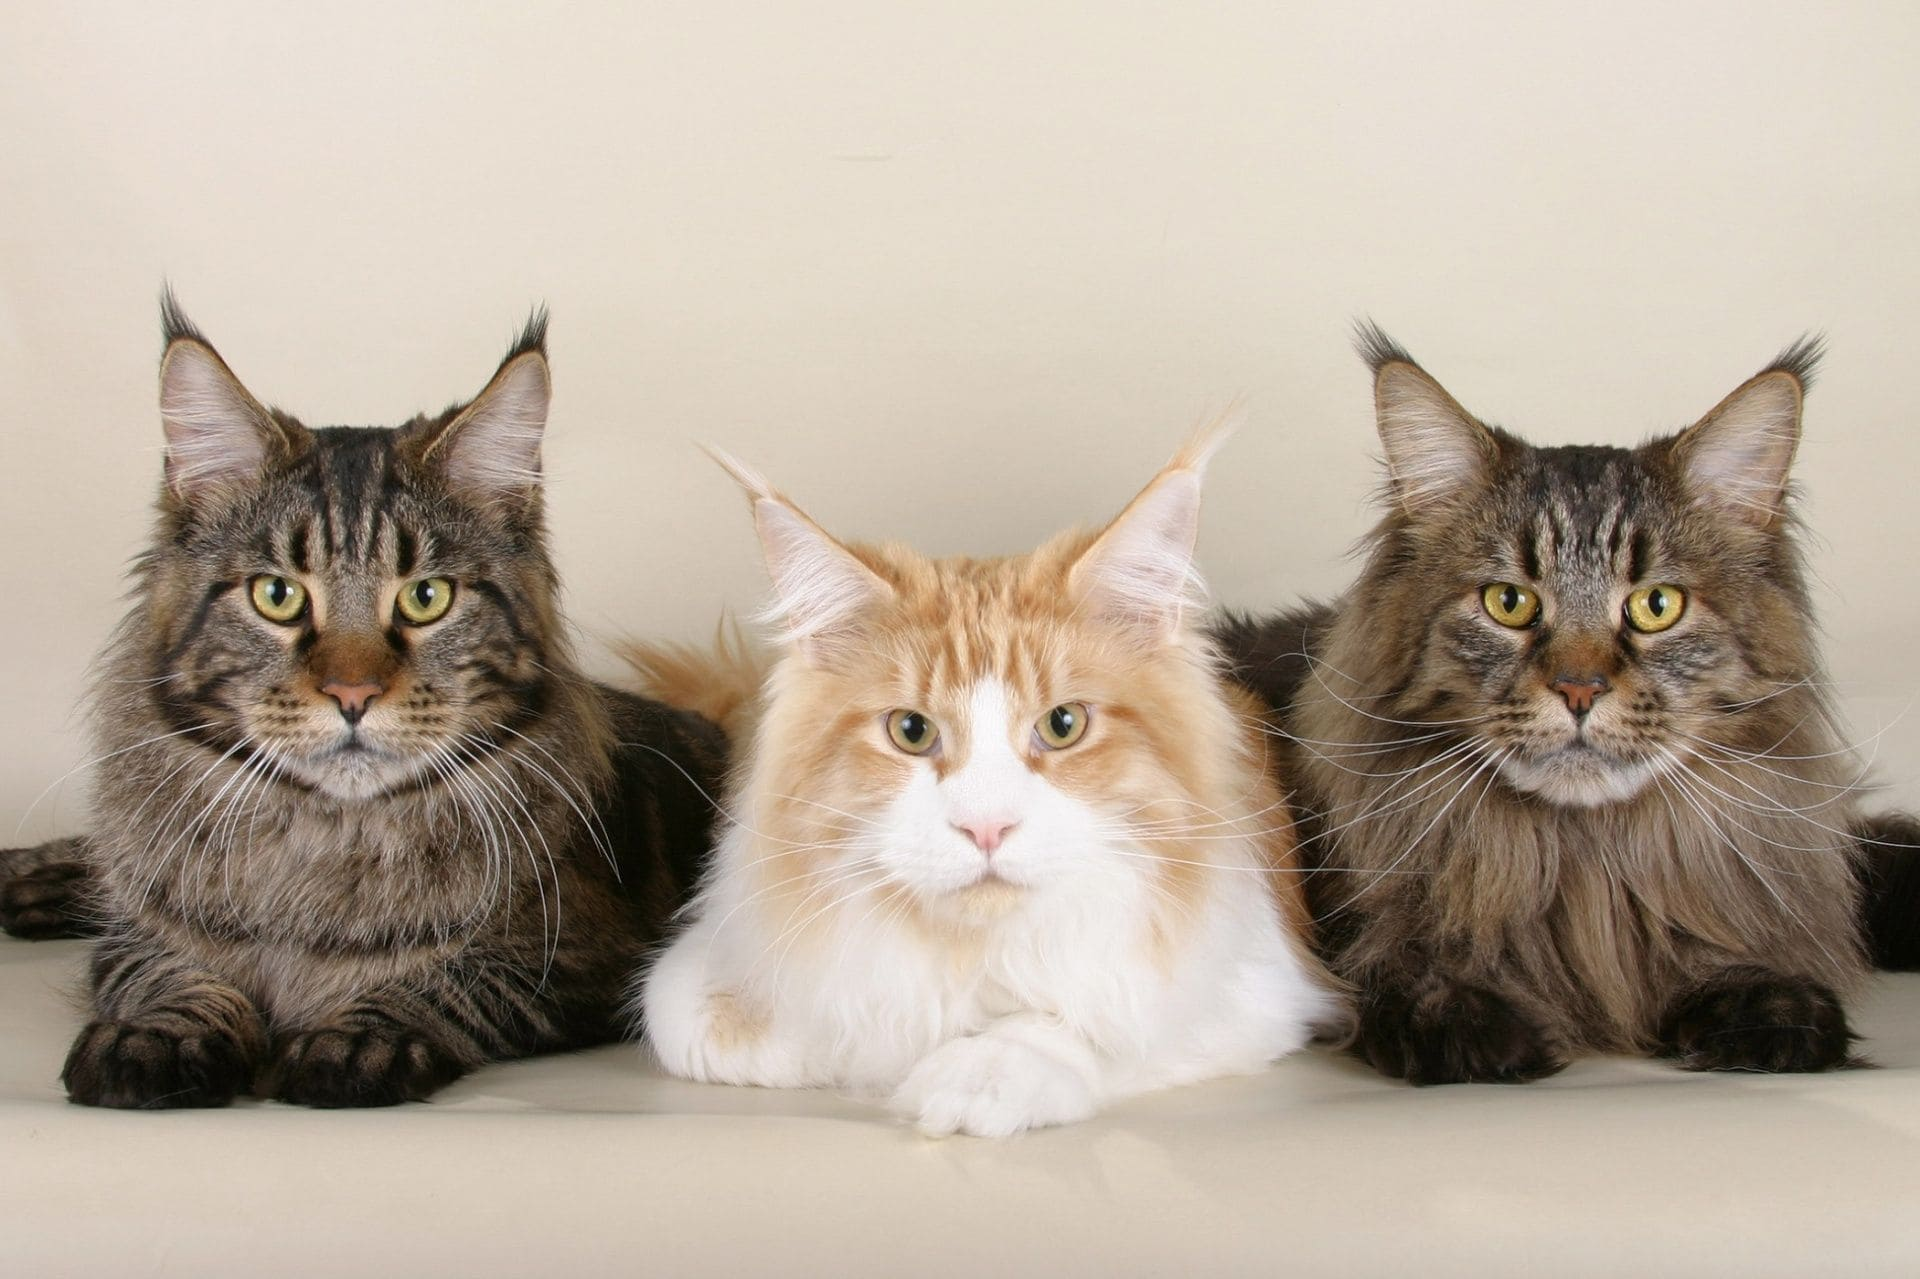 Three Maine Coons